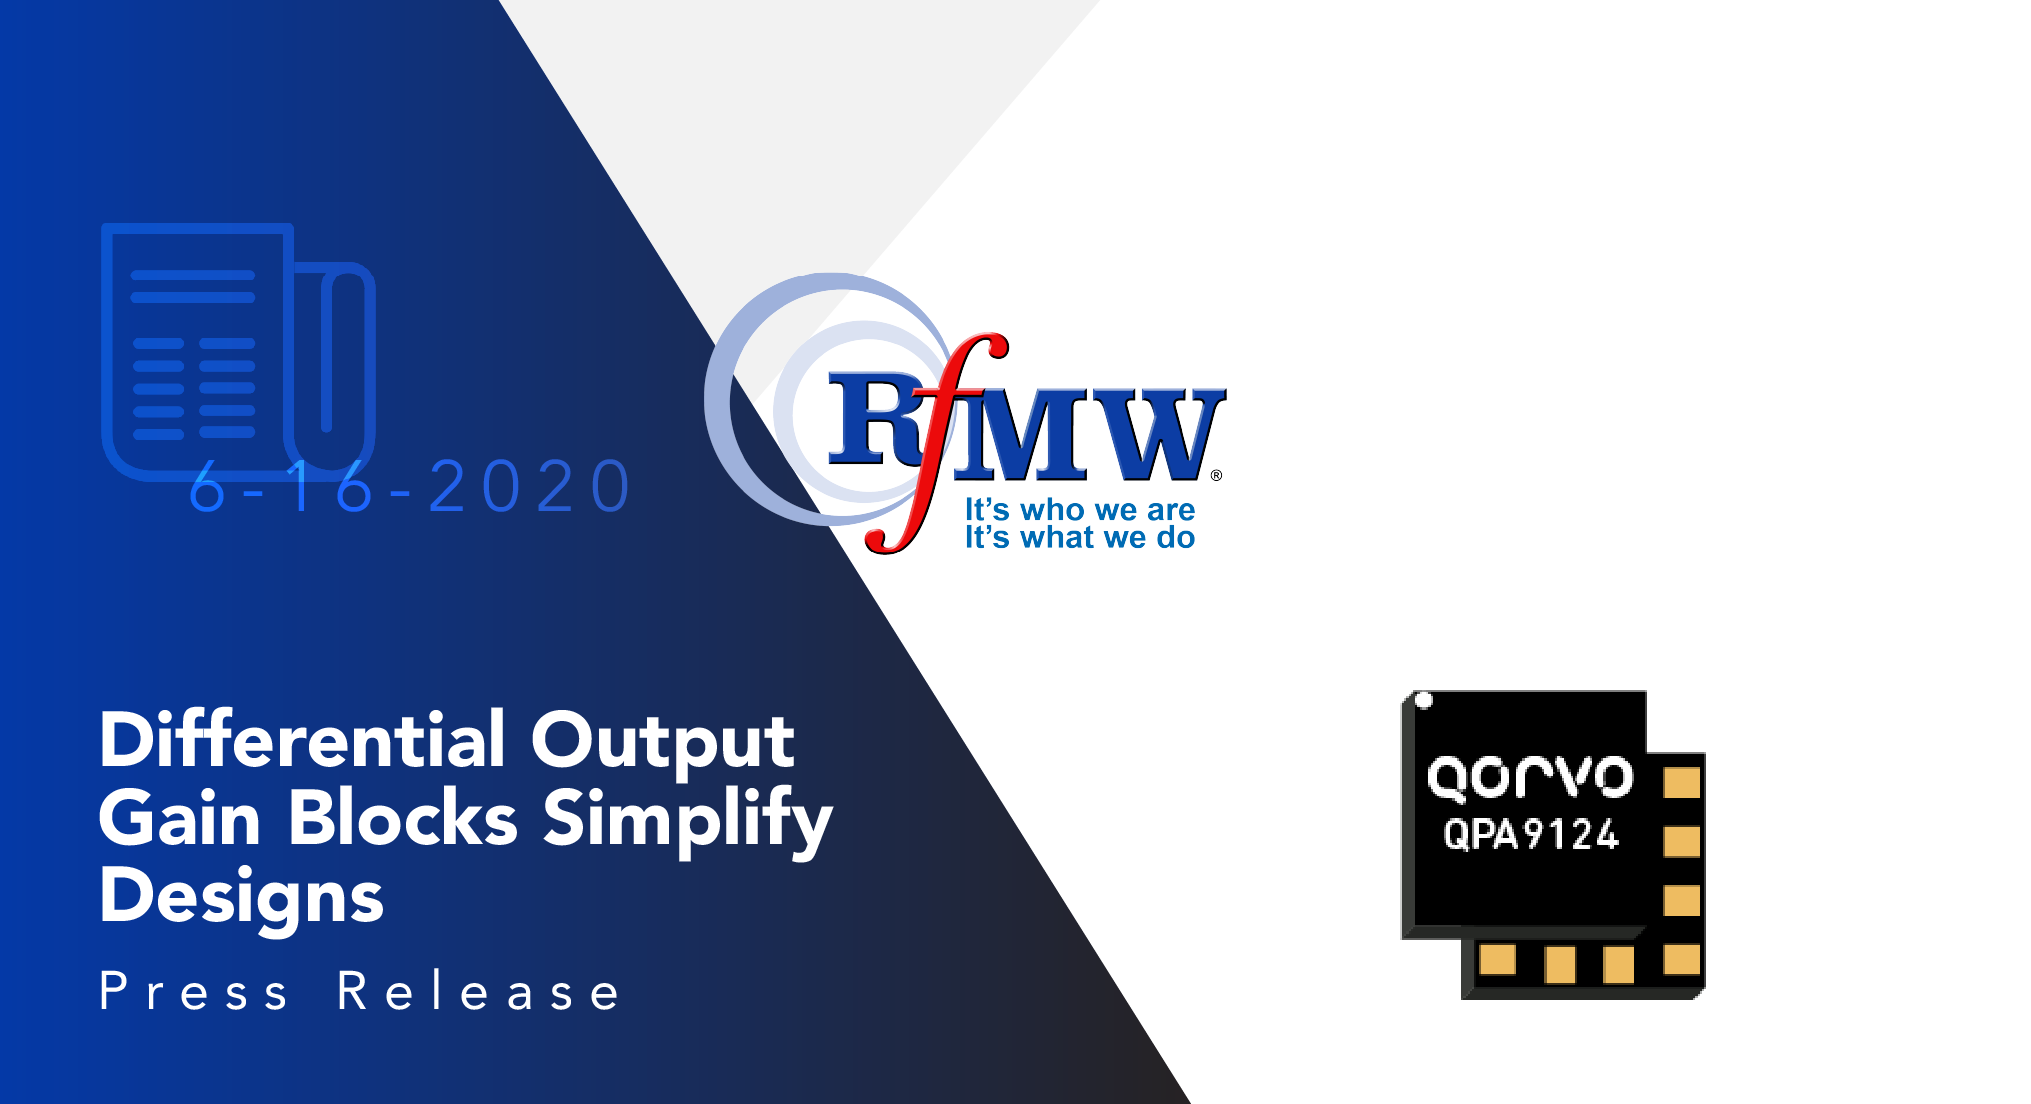 The Qorvo QPA9124 gain block with differential output offers a 50 Ω single-ended input to 100 Ω differential output for 3 to 5 GHz 5G m-MIMO